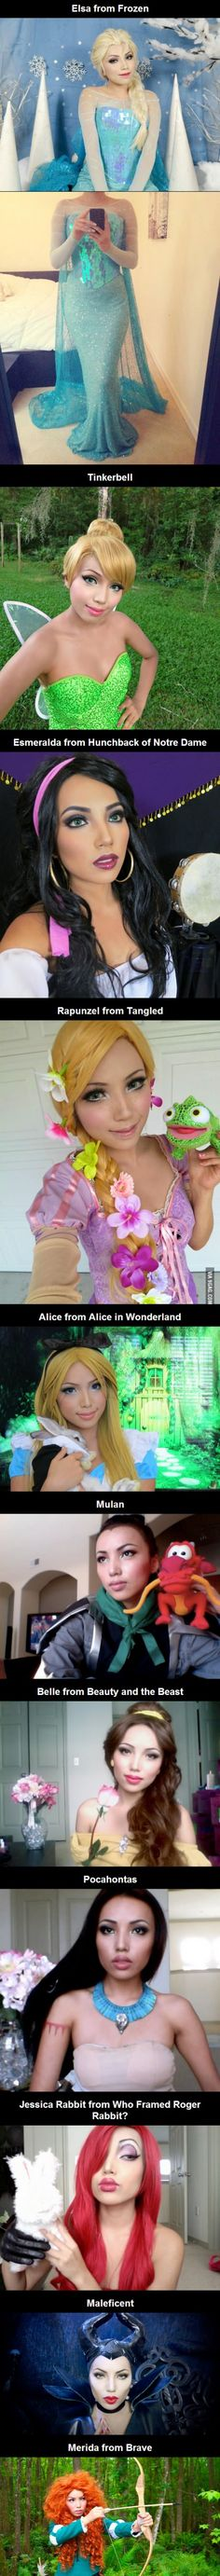 Girl dresses up as Disney Princesses